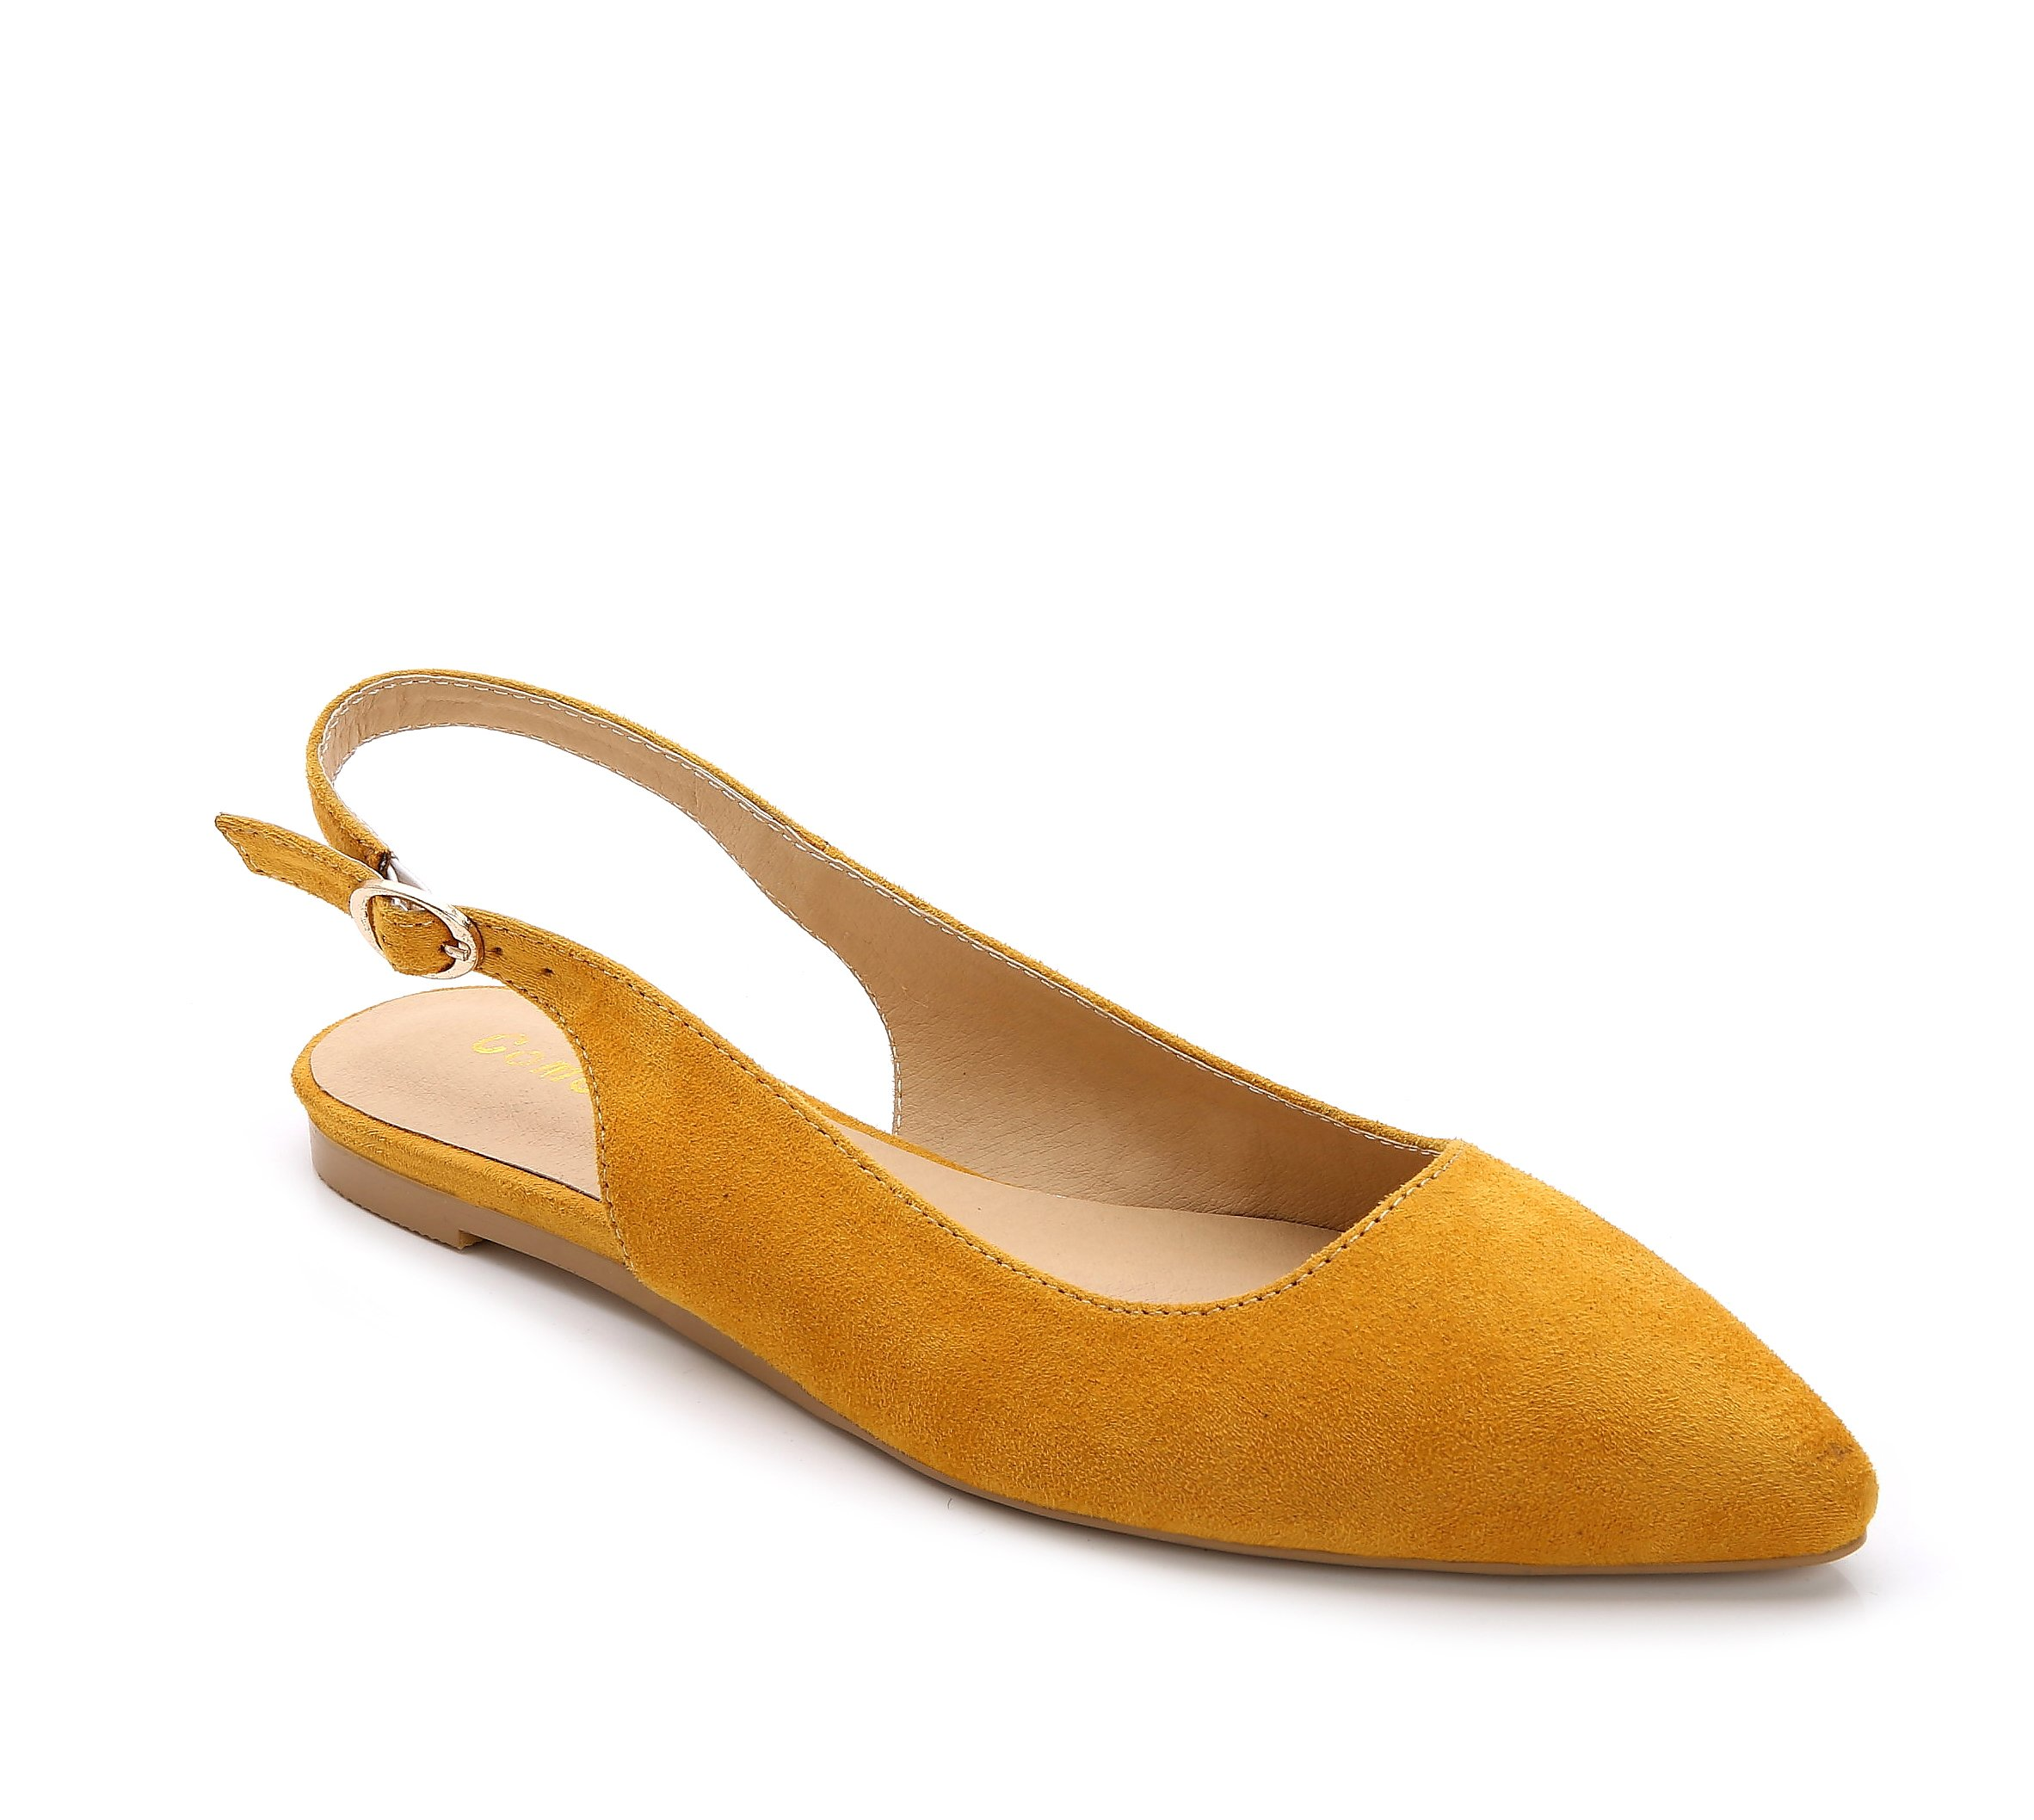 ComeShun Yellow Womens Comfort Low Flat Sandals Adjustable Buckle Slip On Dress Pumps Suede Shoes Size 10